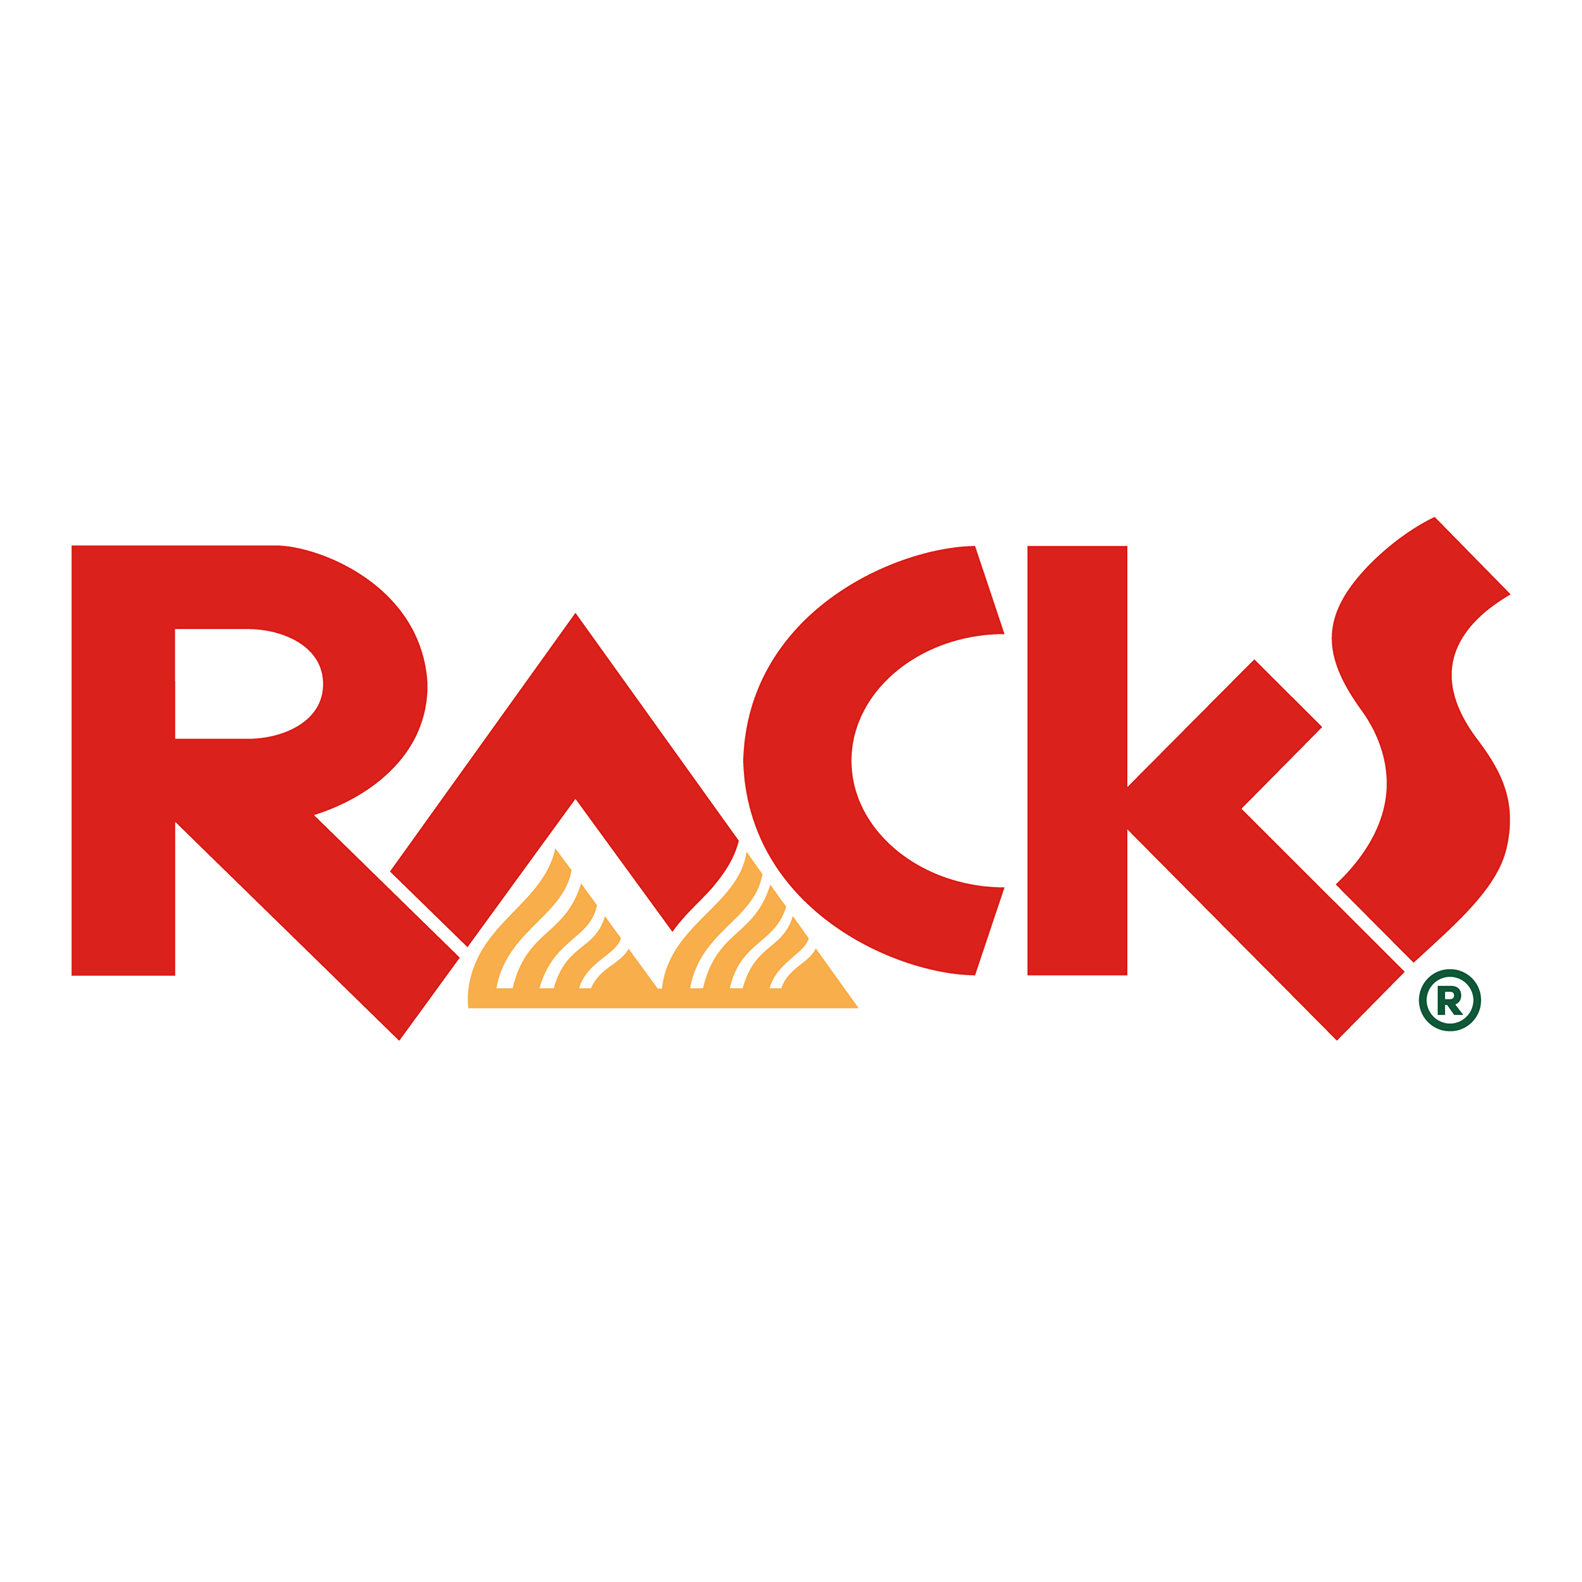 RACKS (SM Seaside, Cebu City) Cebu City